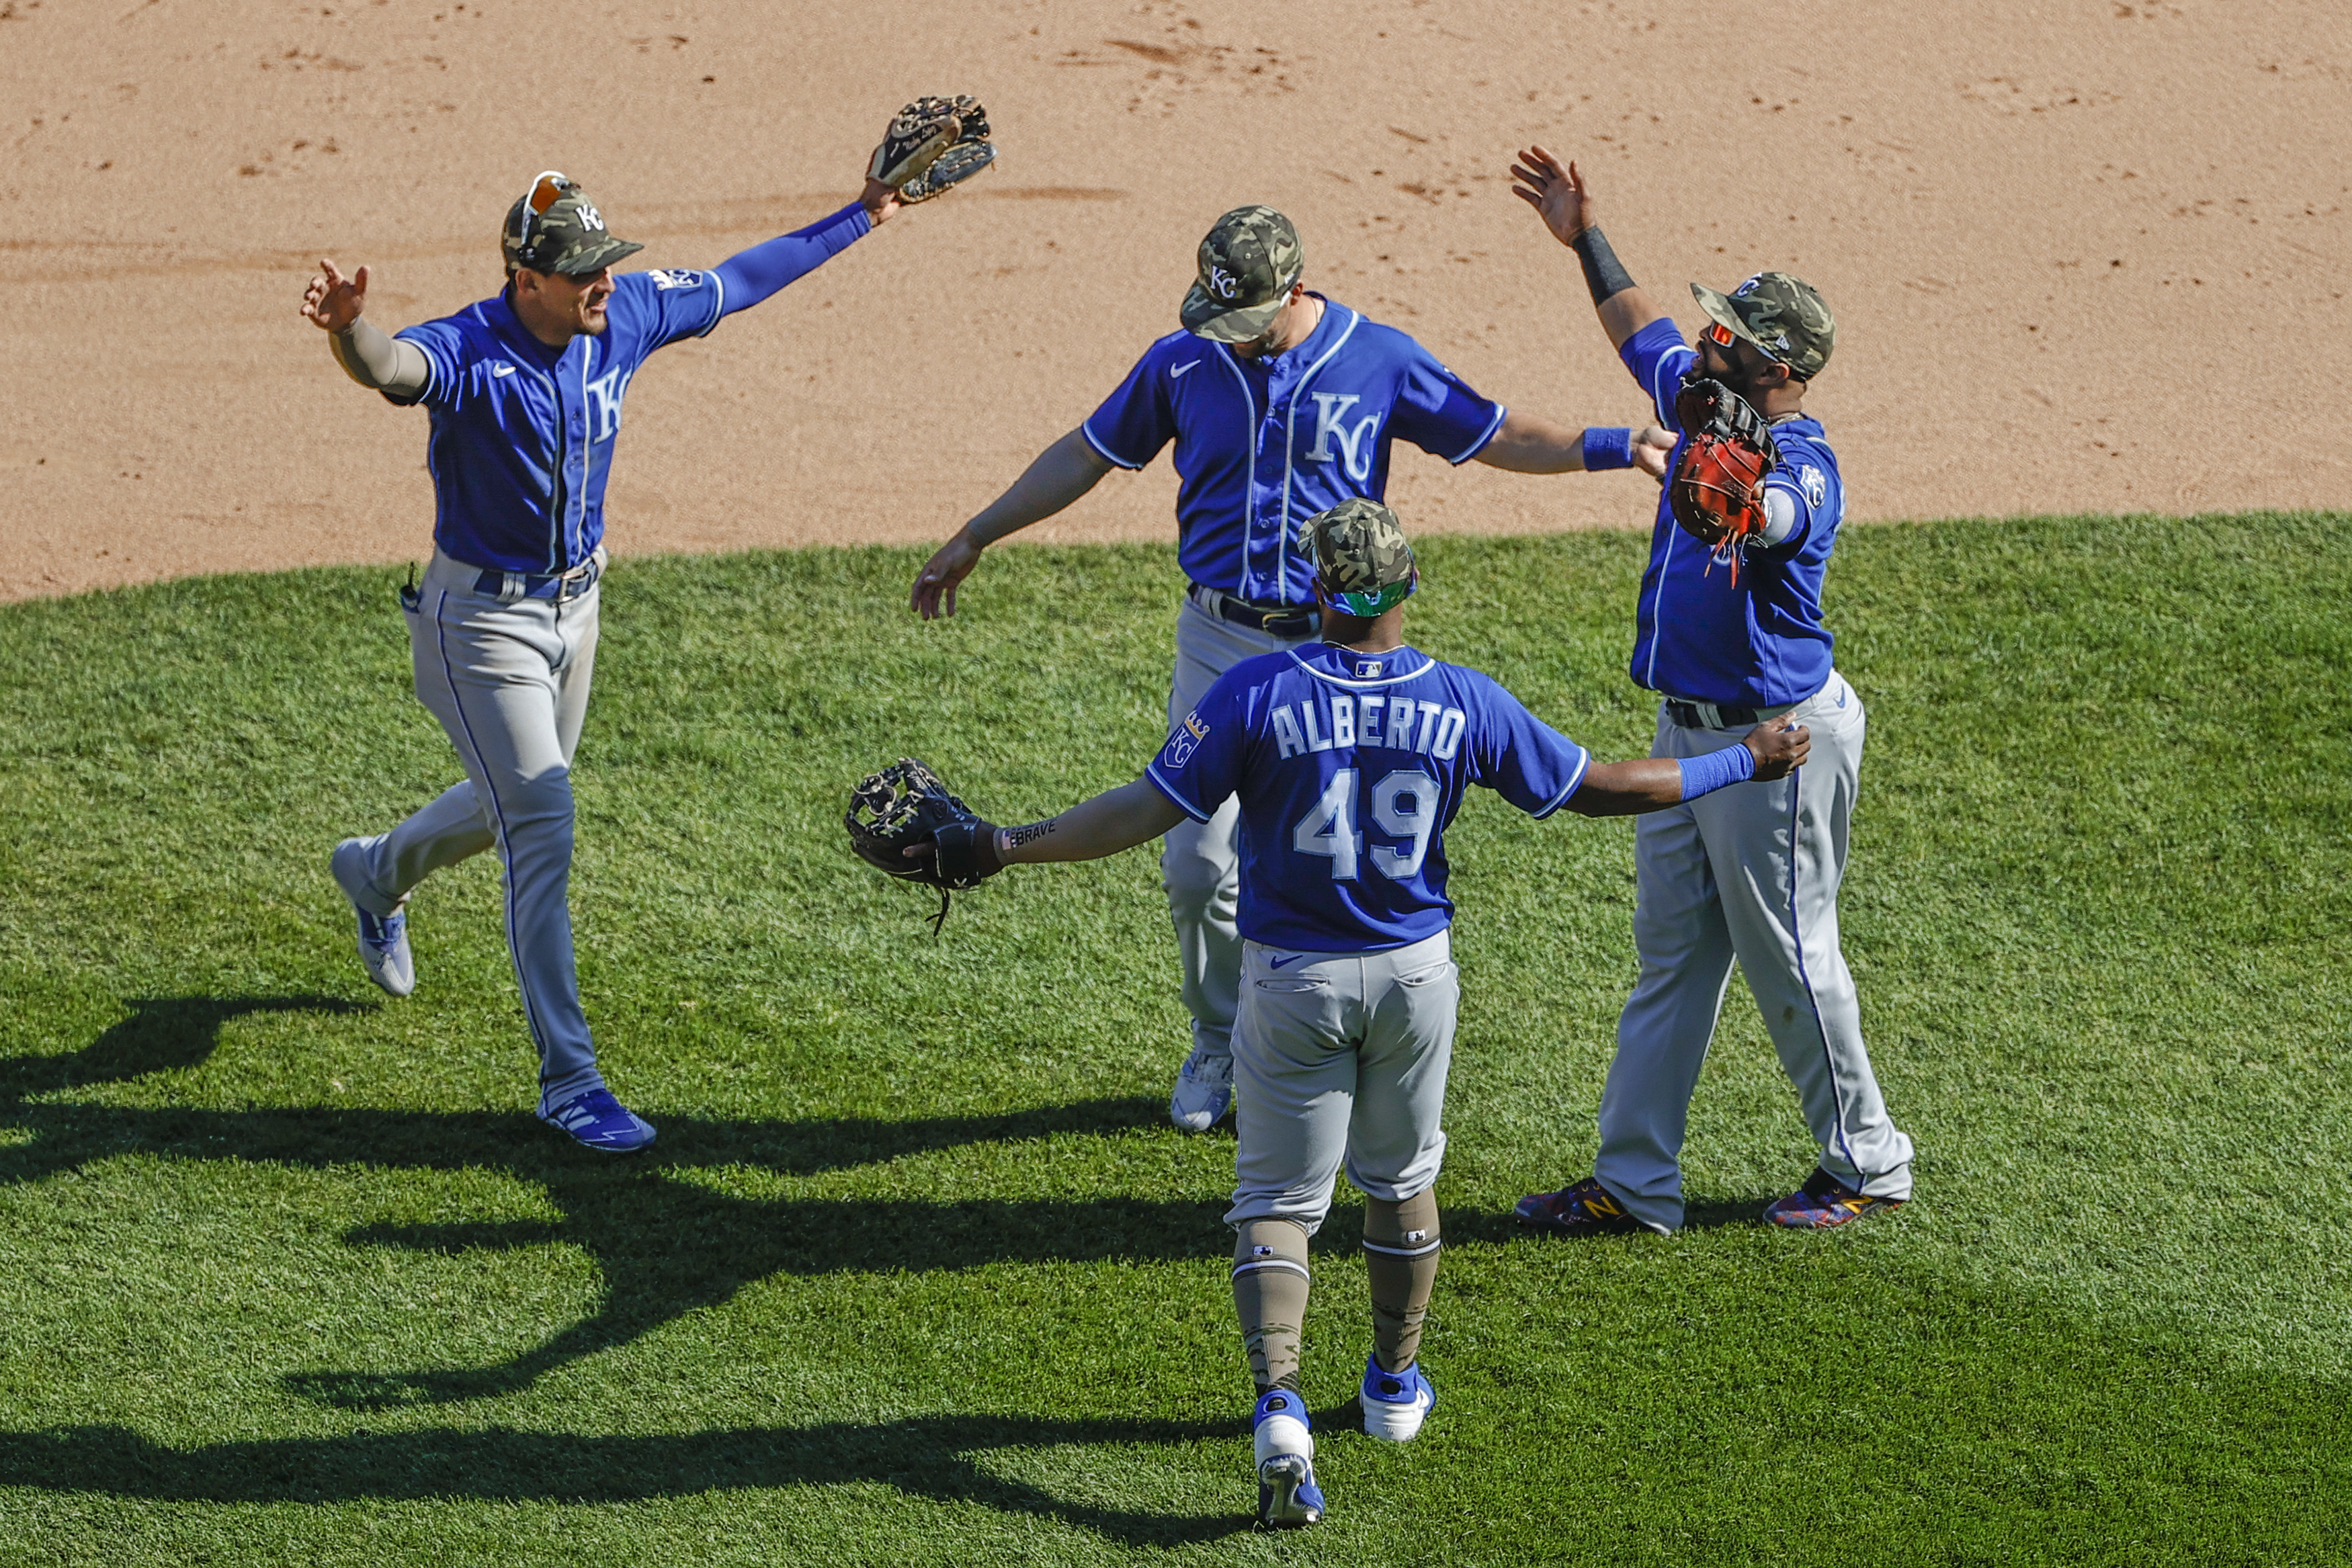 Royals snap 11-game skid with win over White Sox | Reuters